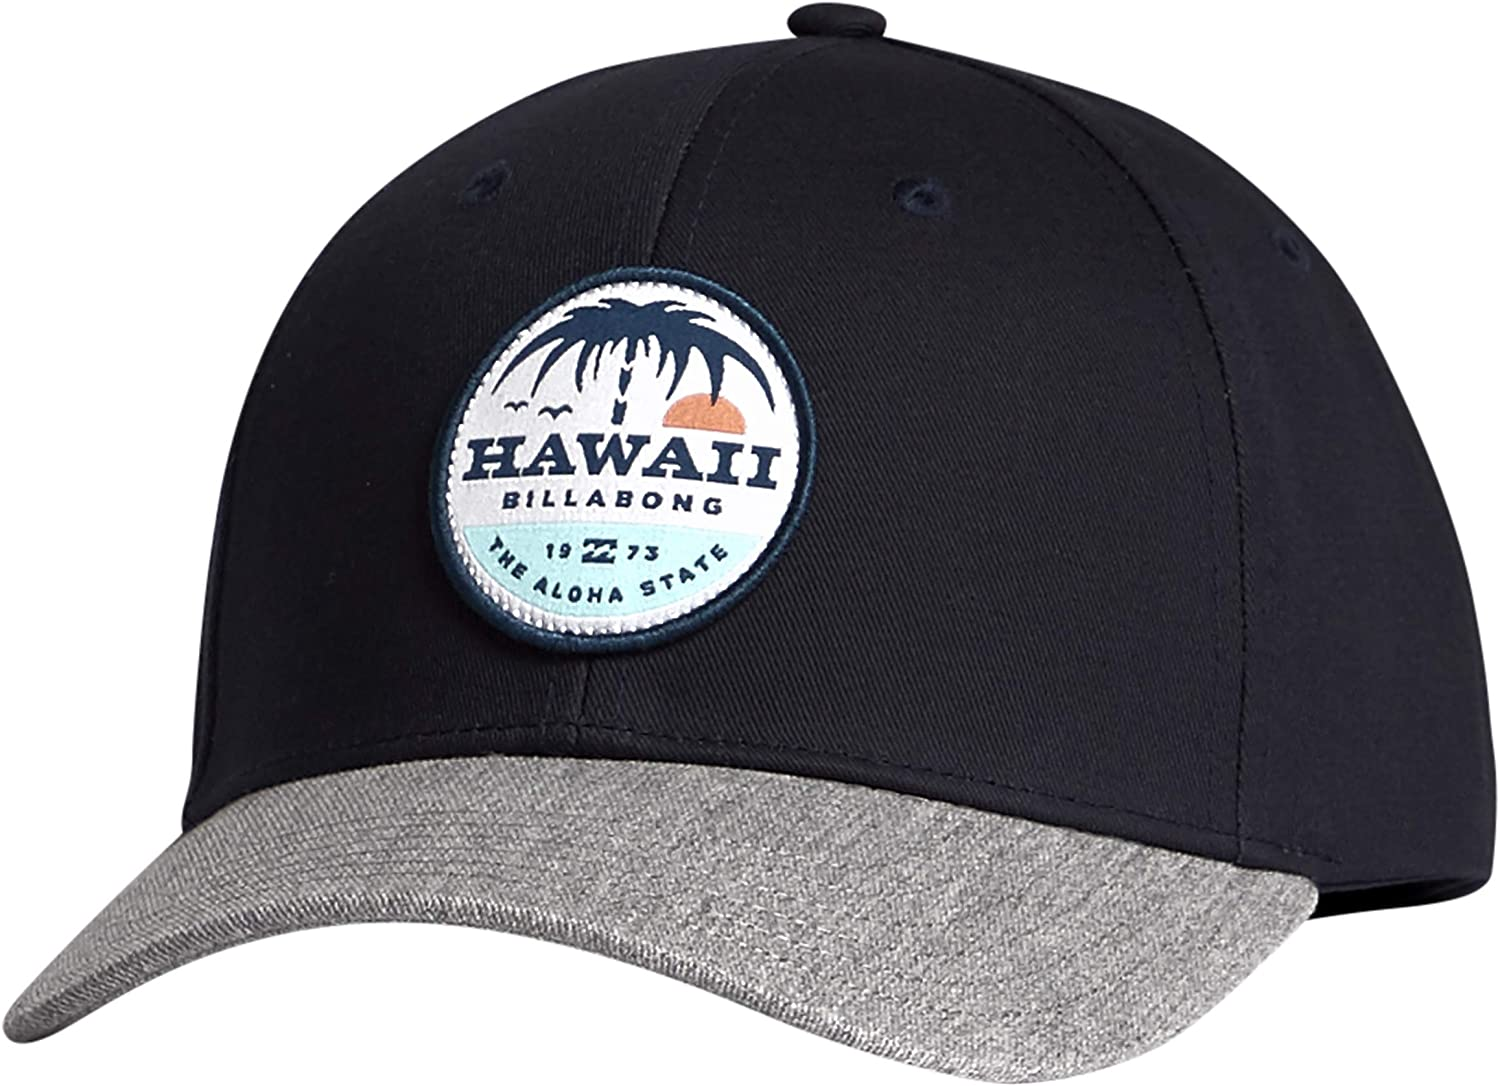 BILLABONG Dreamy Place Snapbac Caps, Hombre, Navy, U: Amazon.es ...